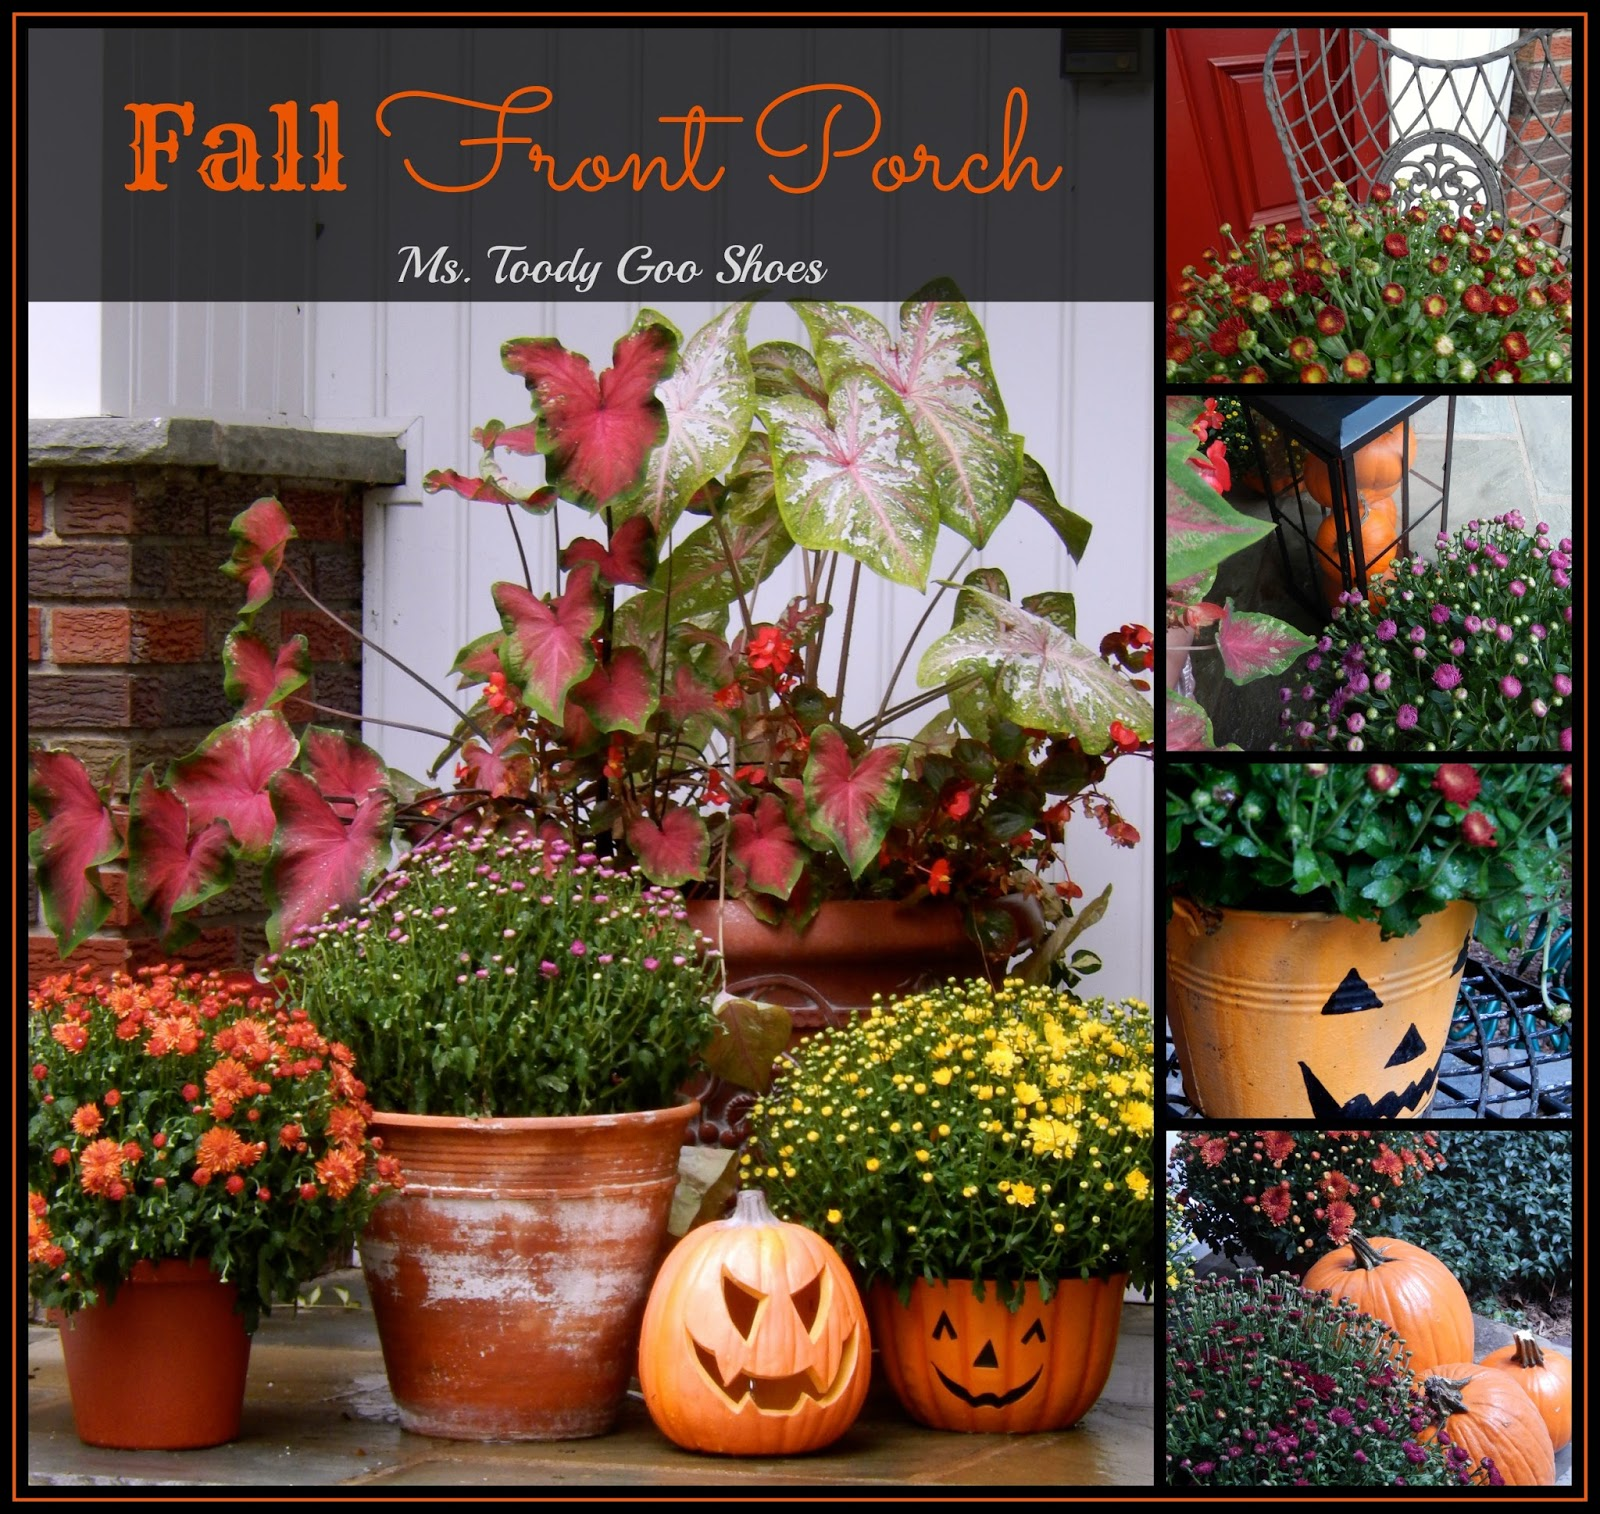 Fall Front Porch (Ms. Toody Goo Shoes)